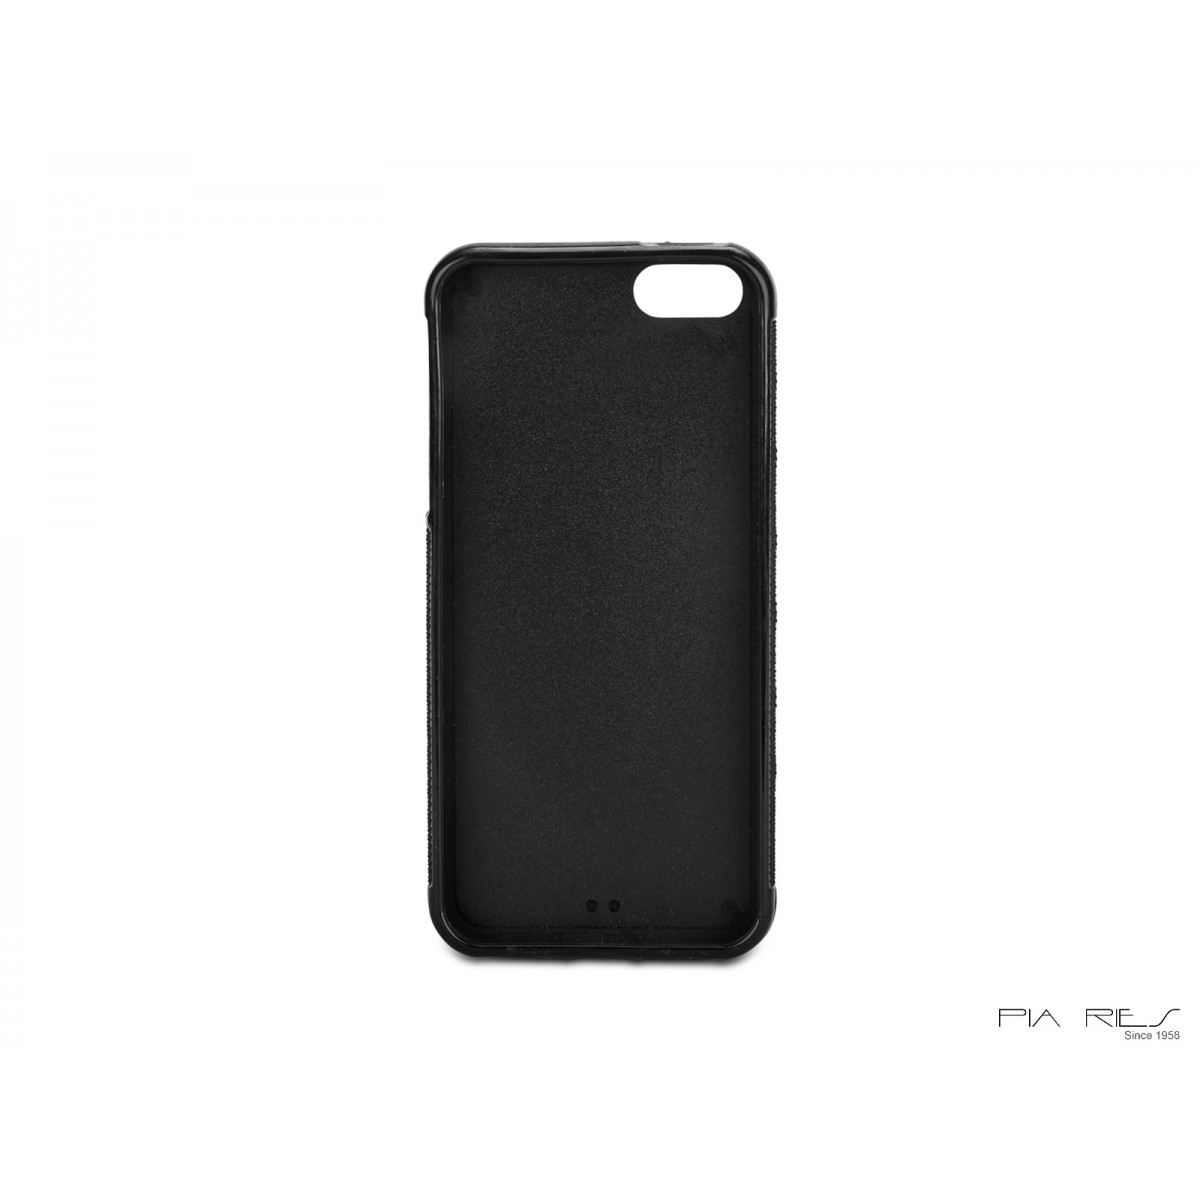 iPhone 5/5S plastik cover-34